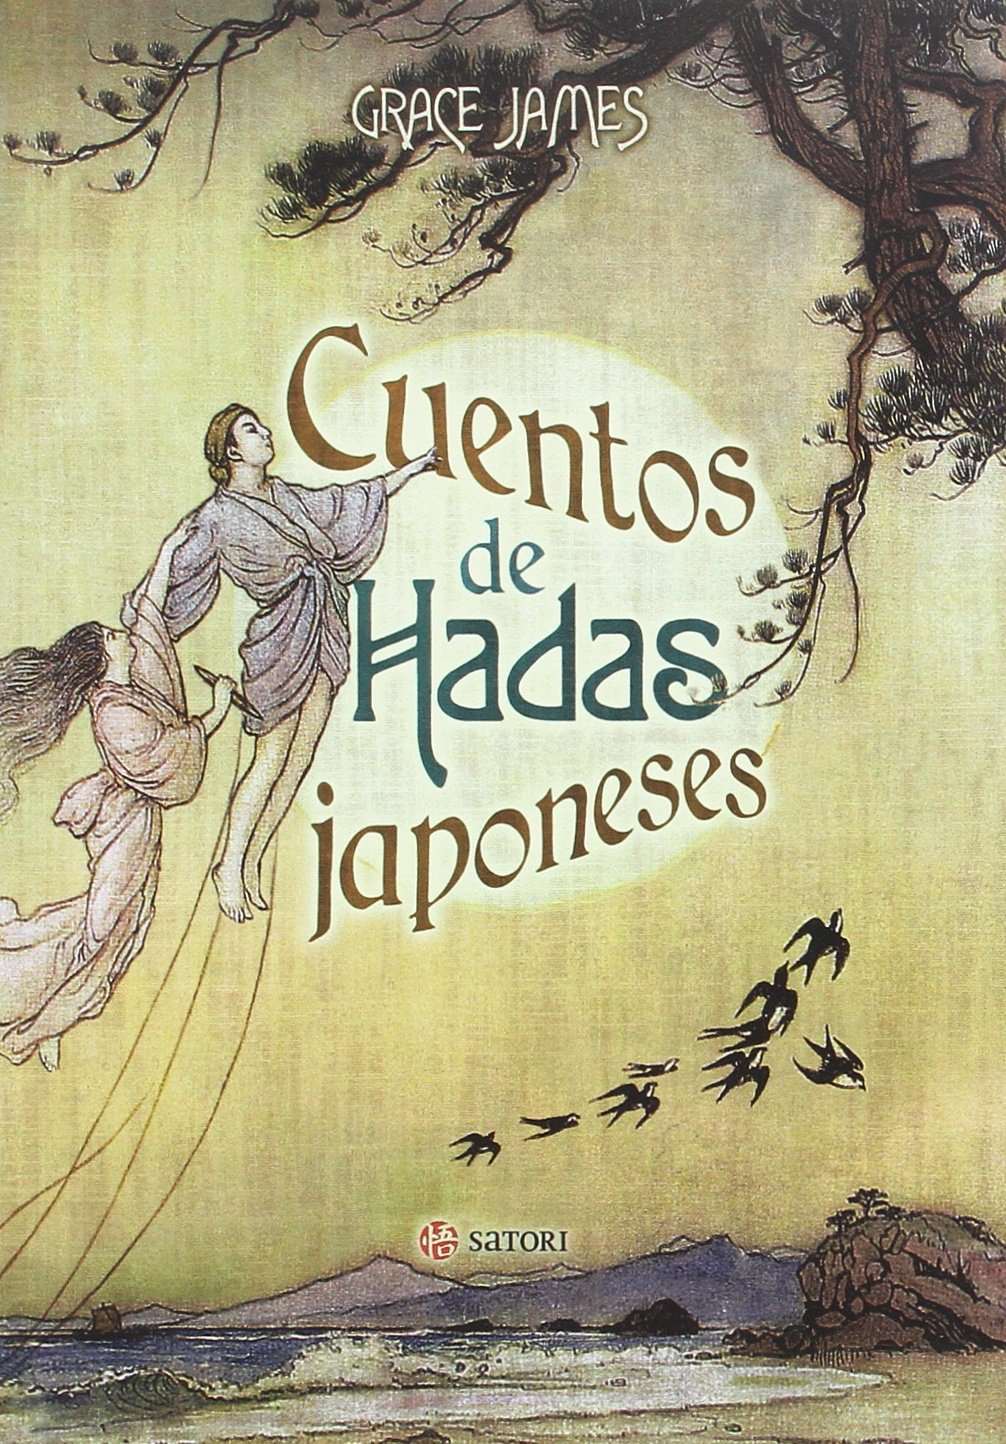 Cuentos de hadas japoneses: Amazon.es: Grace James: Libros